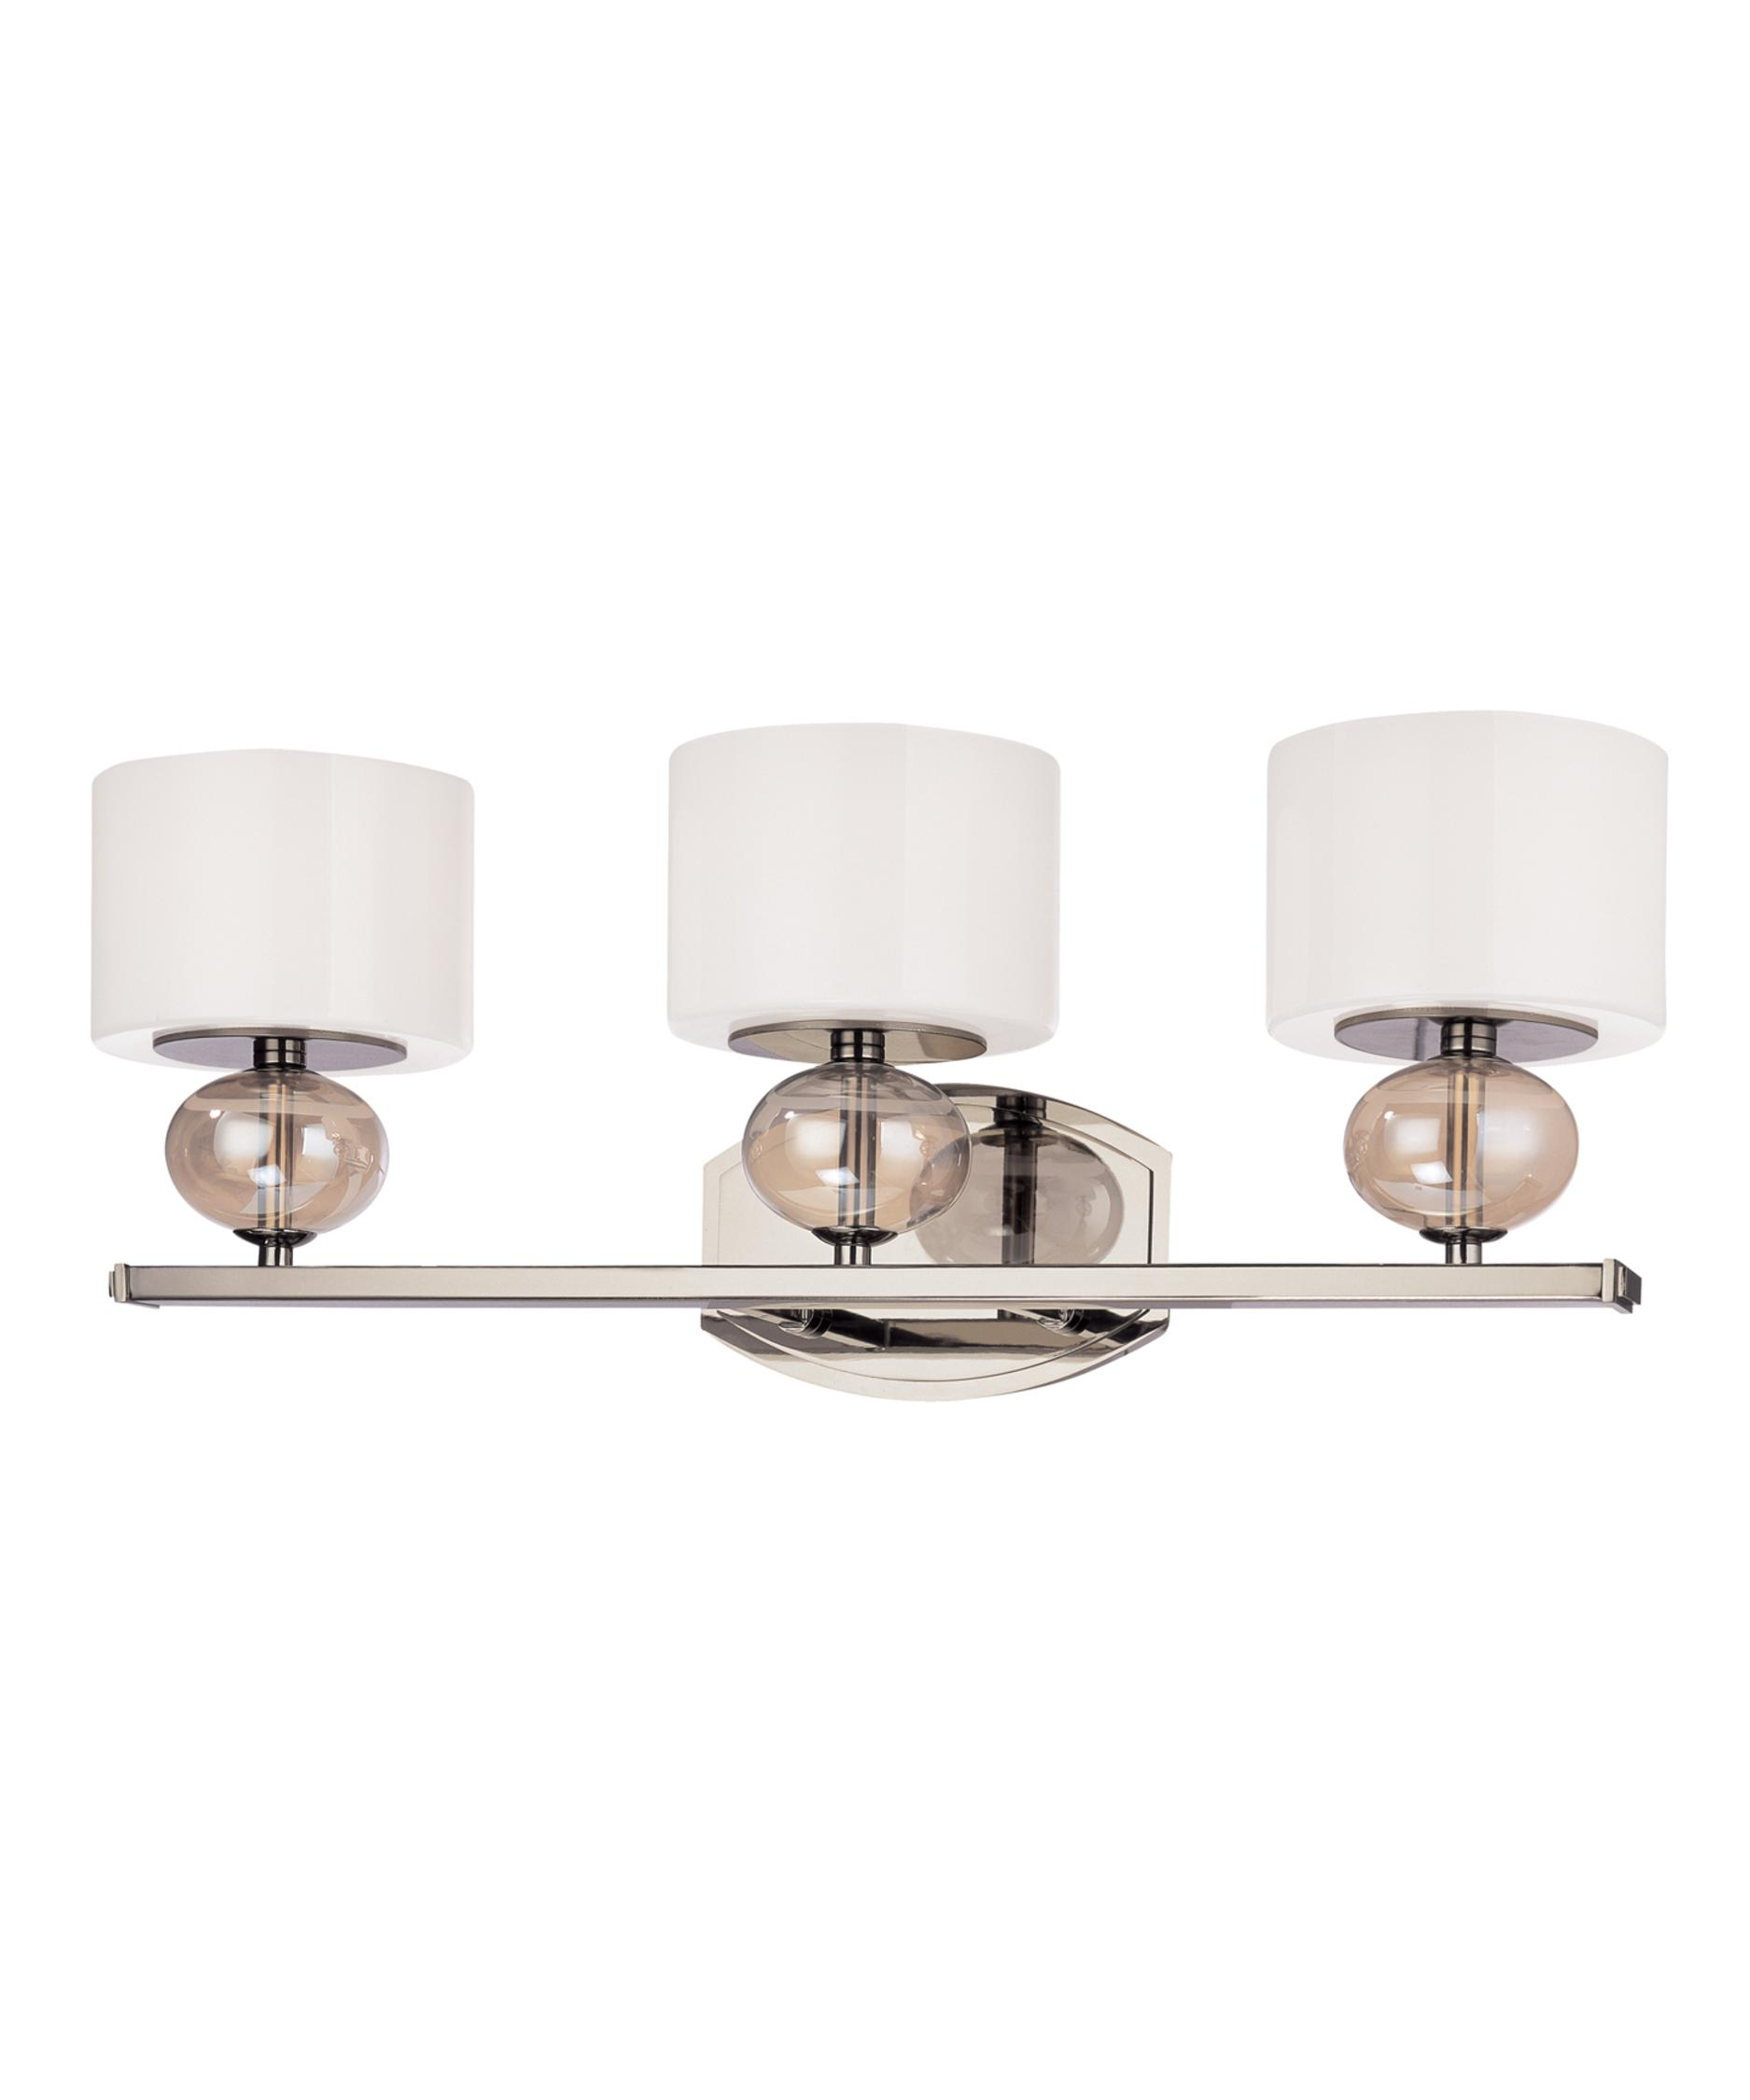 Bathroom Vanity Lights Polished Nickel troy lighting b2853 fizz 23 inch wide bath vanity light | capitol